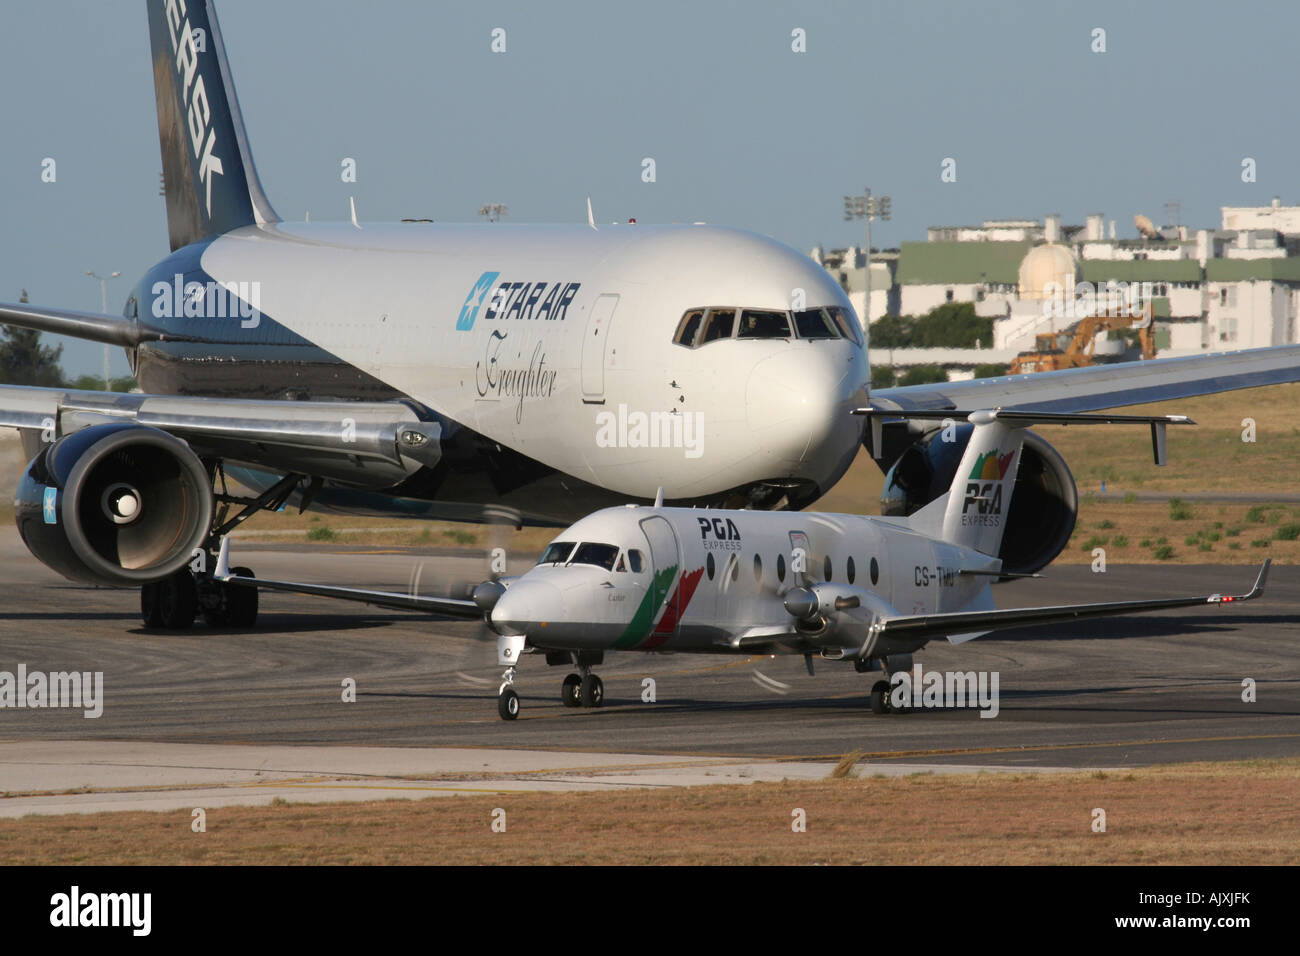 Air traffic. Aircraft queuing for takeoff at Lisbon Portela Airport, Portugal - Stock Image